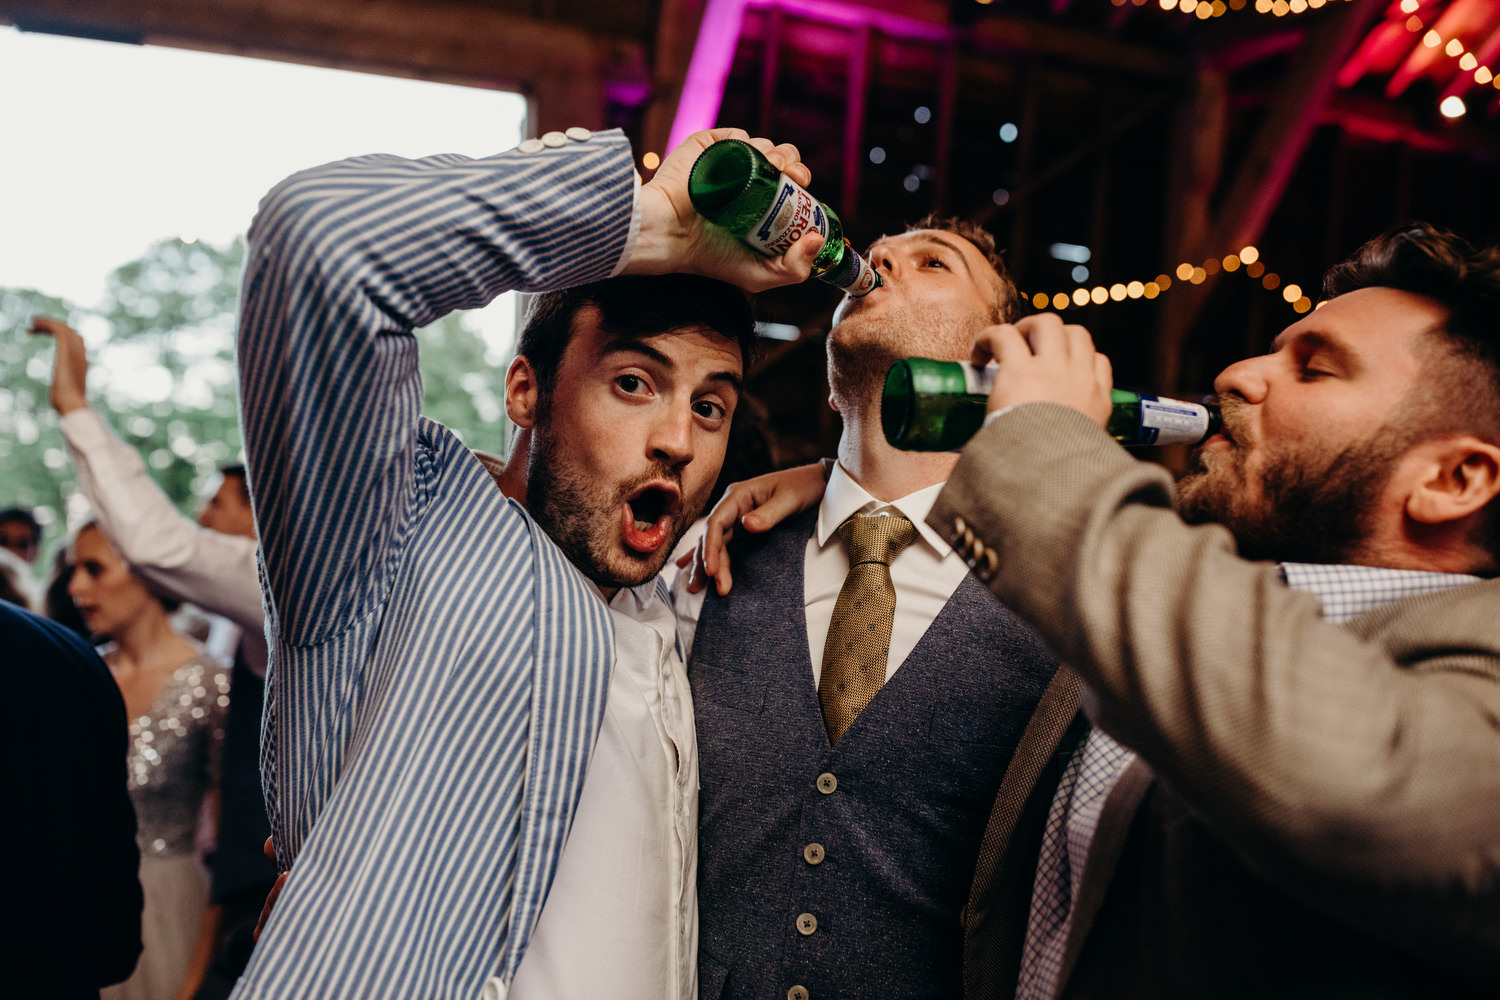 drinking at wedding party